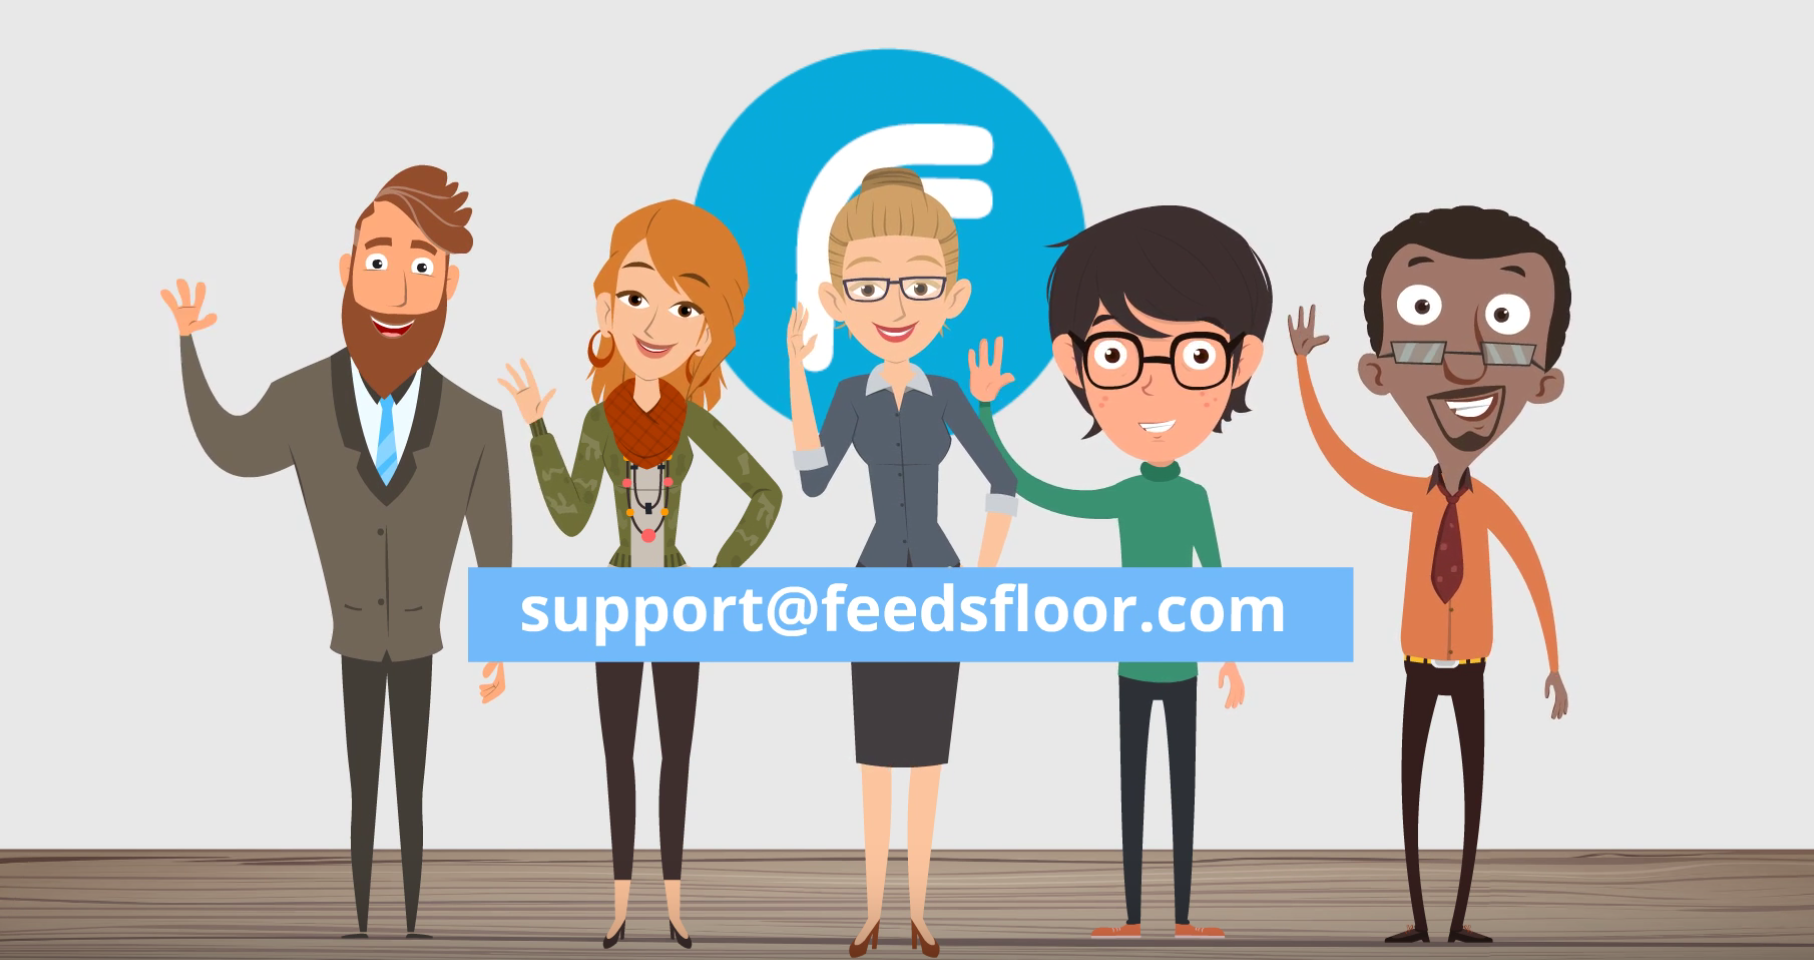 Team FeedsFloor